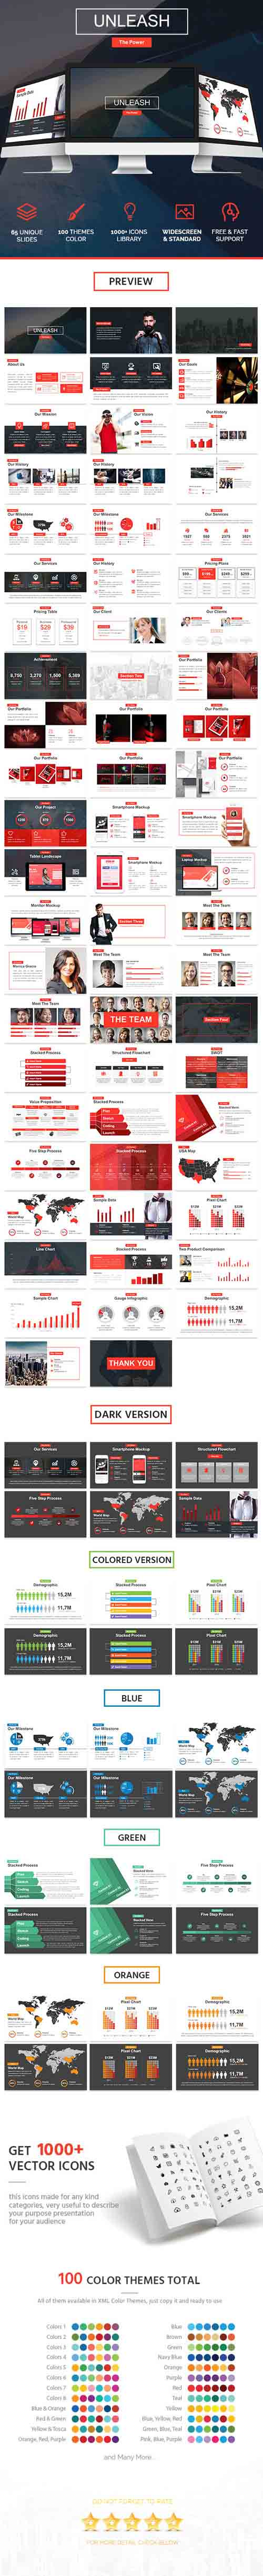 Unleash Powerpoint Template - Relase the Power! 17564307